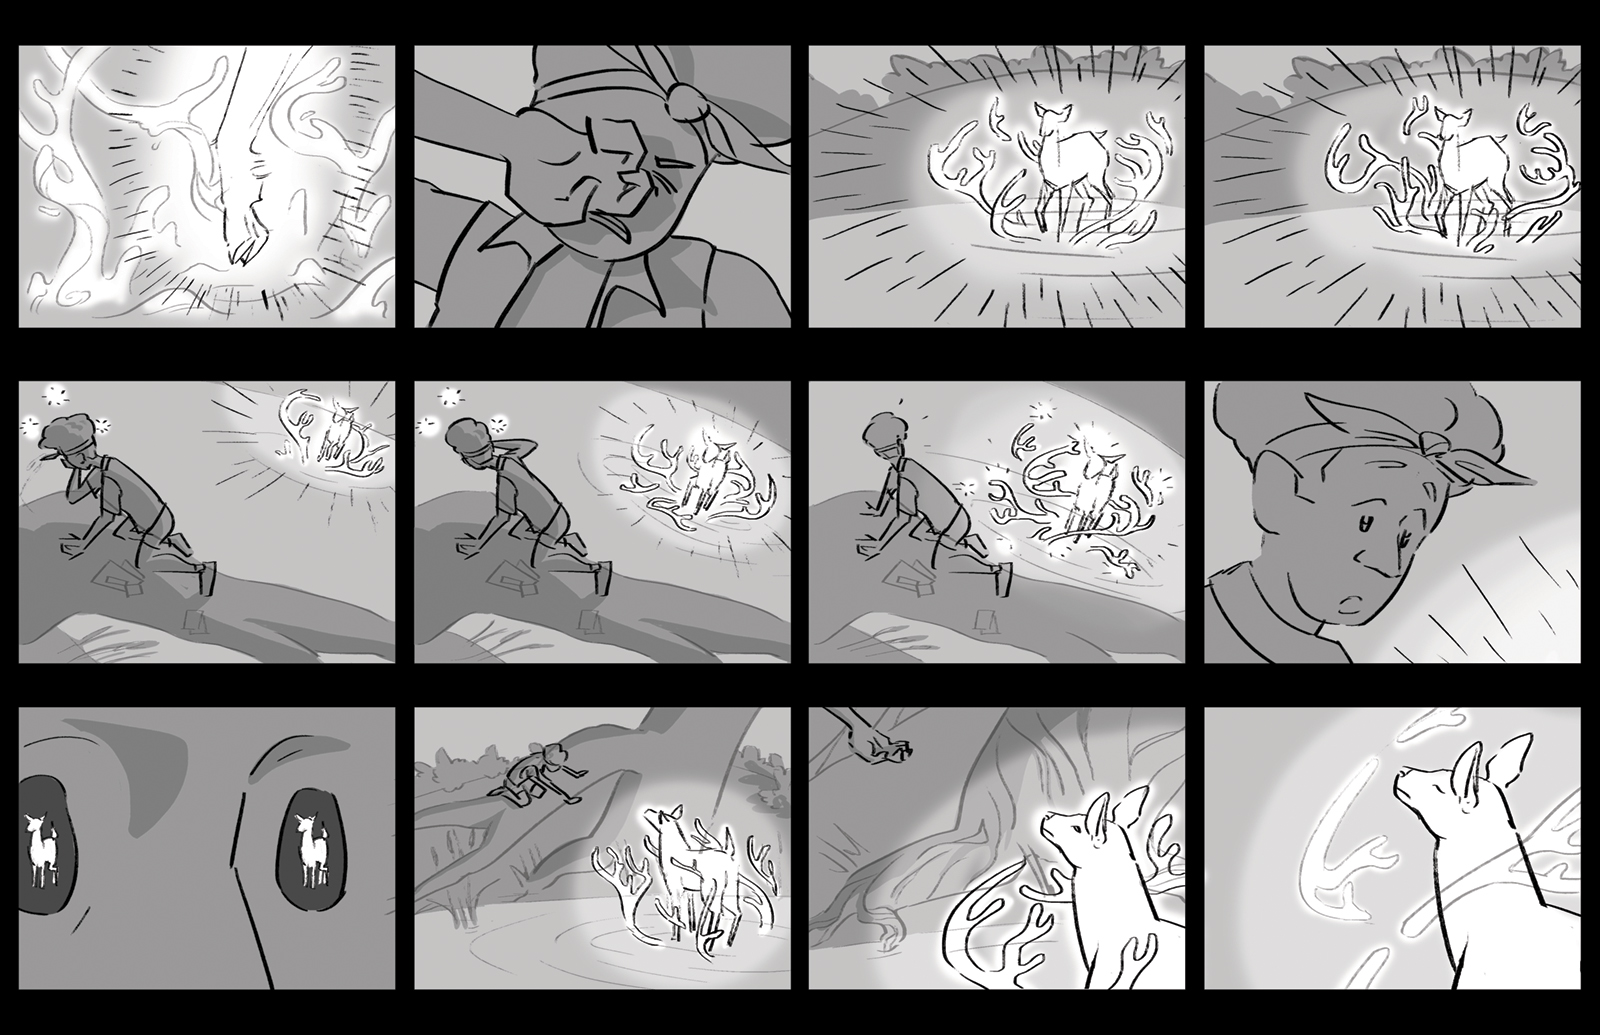 Ninth storyboard. The mysterious light is revealed to be a spirit deer with water antlers. It crosses the pond to greet Denny.